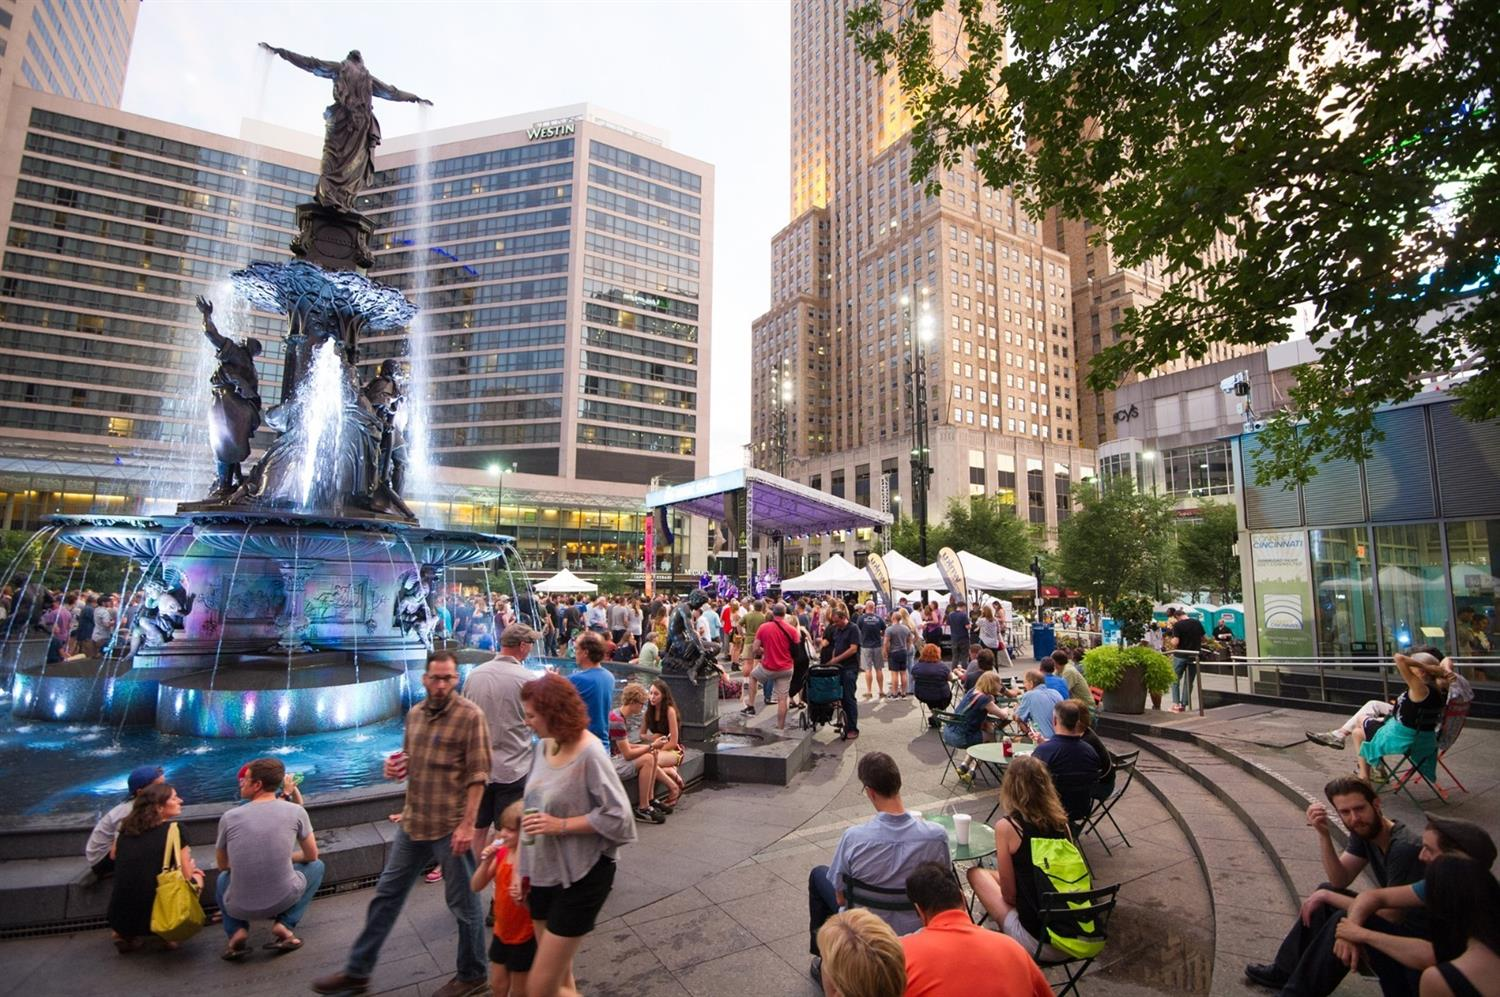 Our thriving city offers a multitude of entertainment options, free concerts on the square, watch the games from the jumbotron, ice skating in the winter, Salsa Thursdays! You'll never have the option to be bored in the suburbs again!